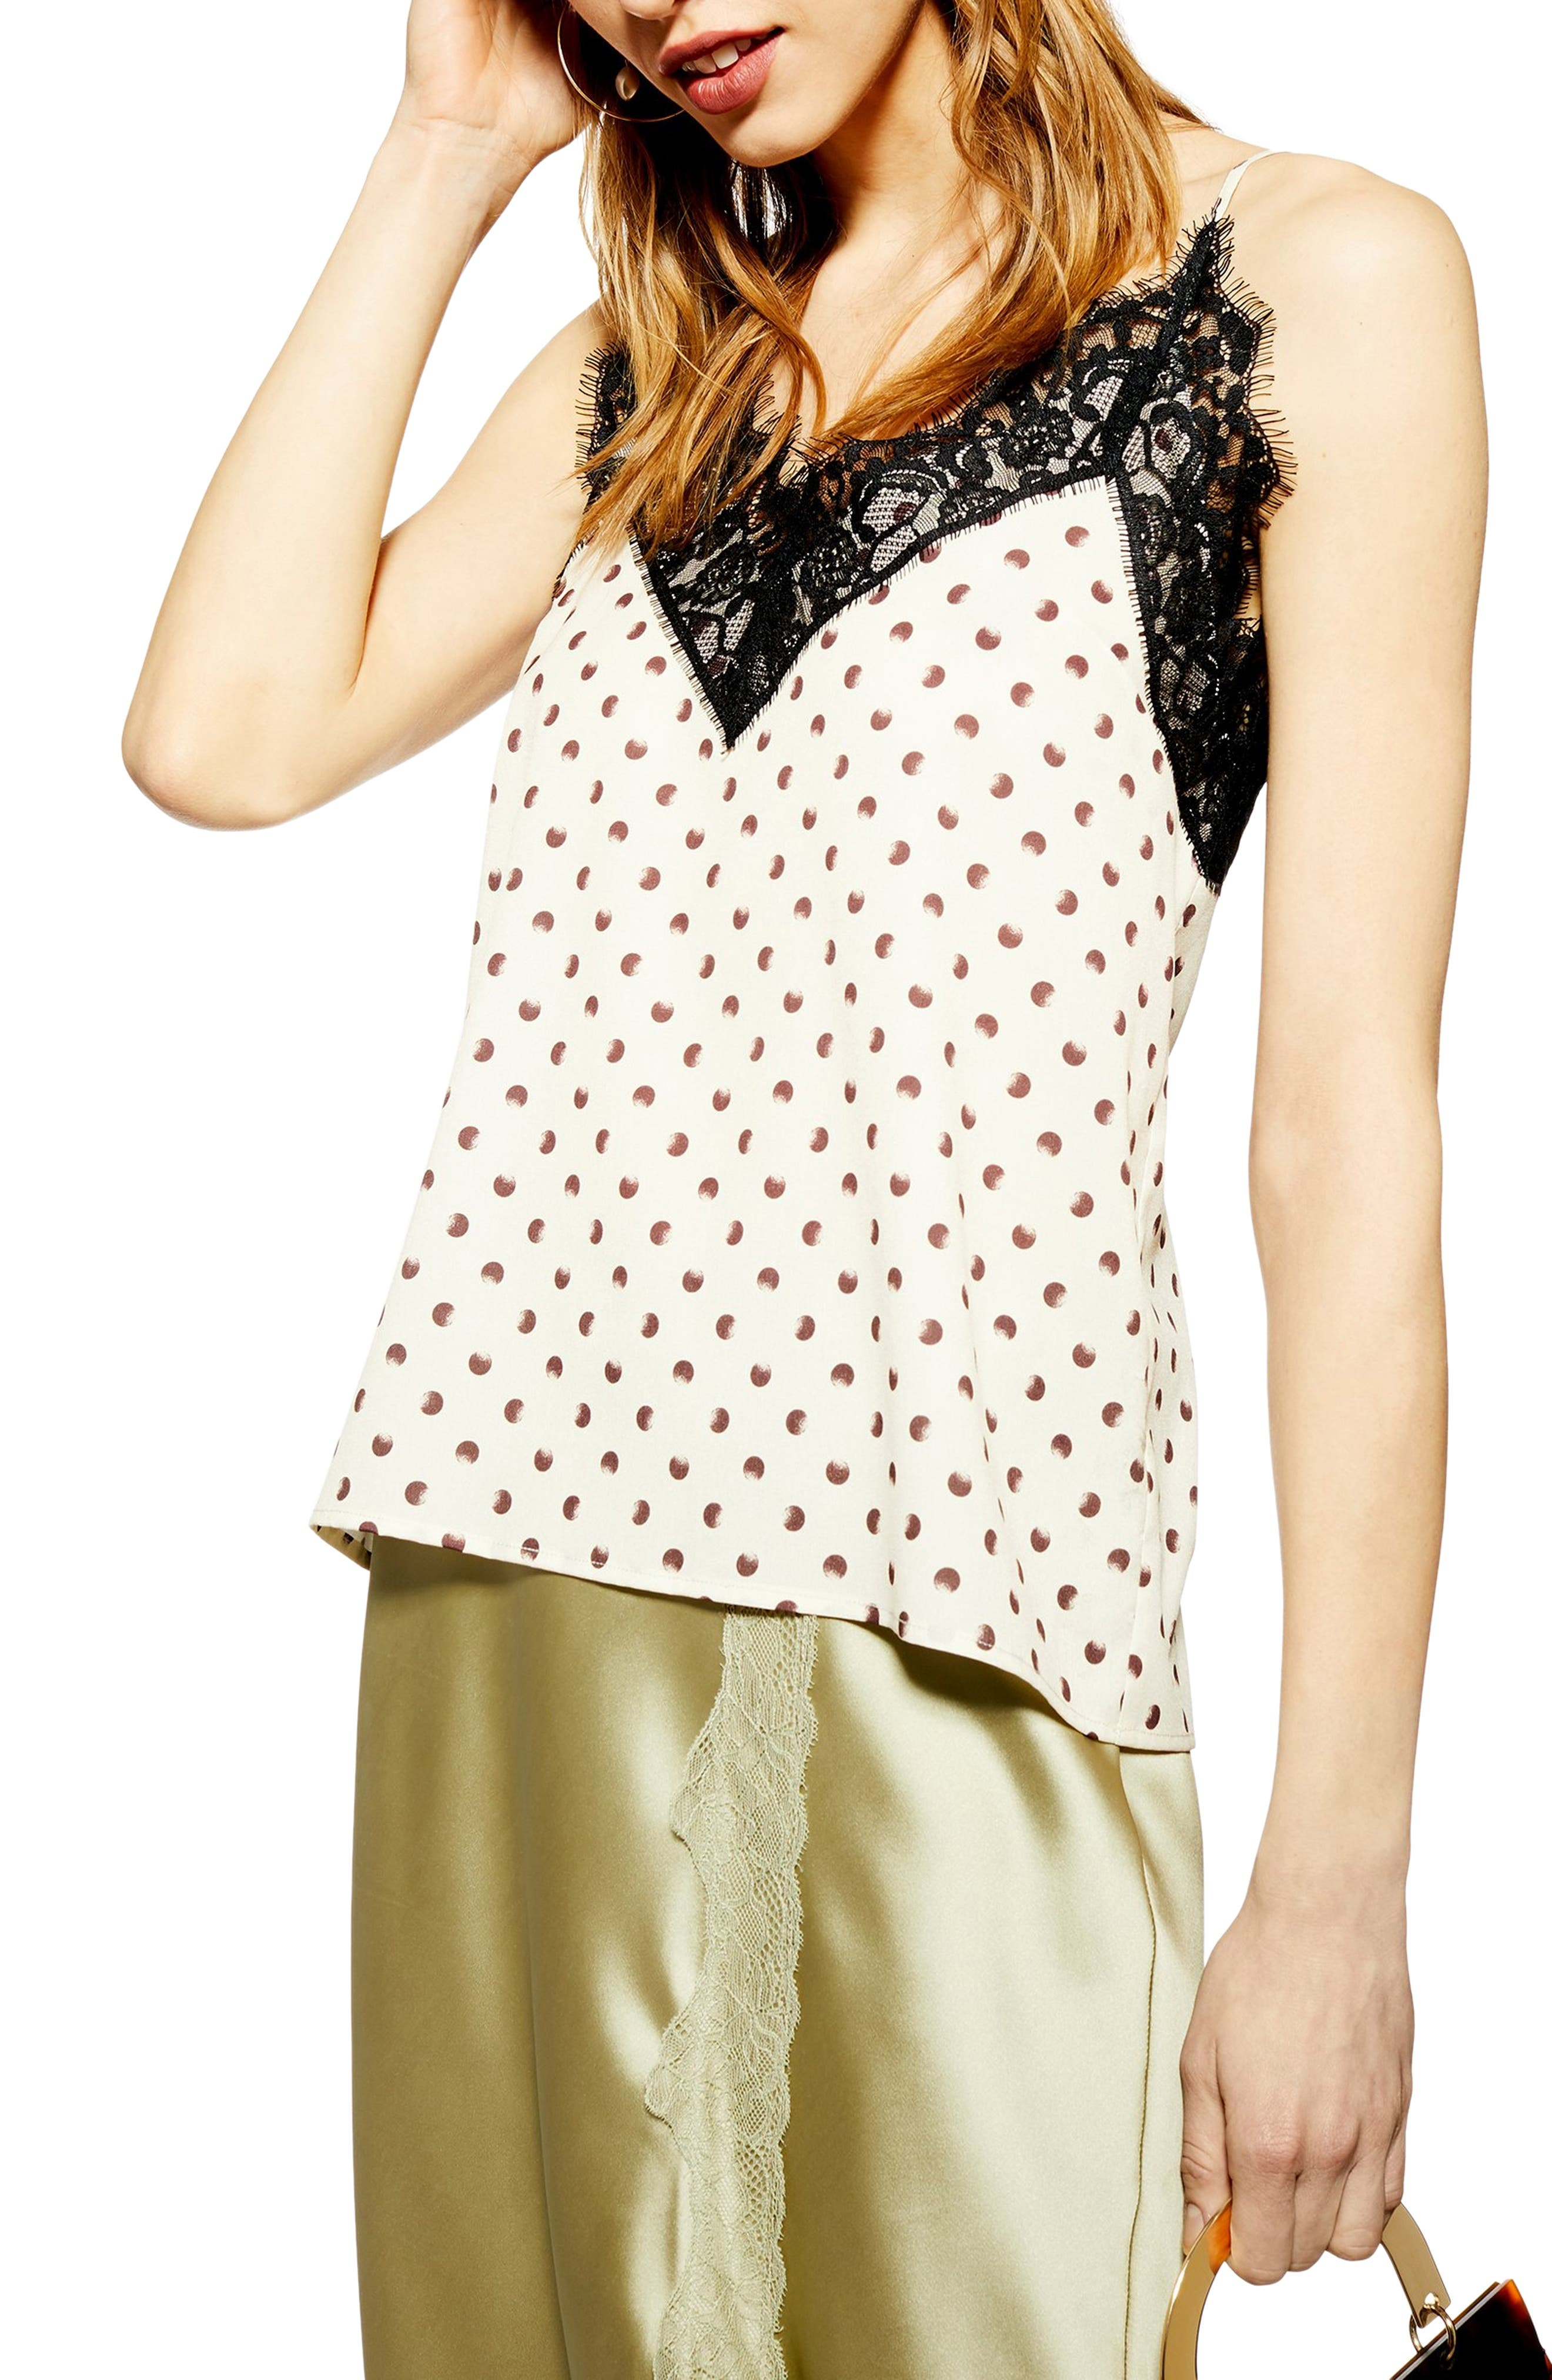 Topshop Spot Lace Camisole Top, US (fits like 0) - Beige